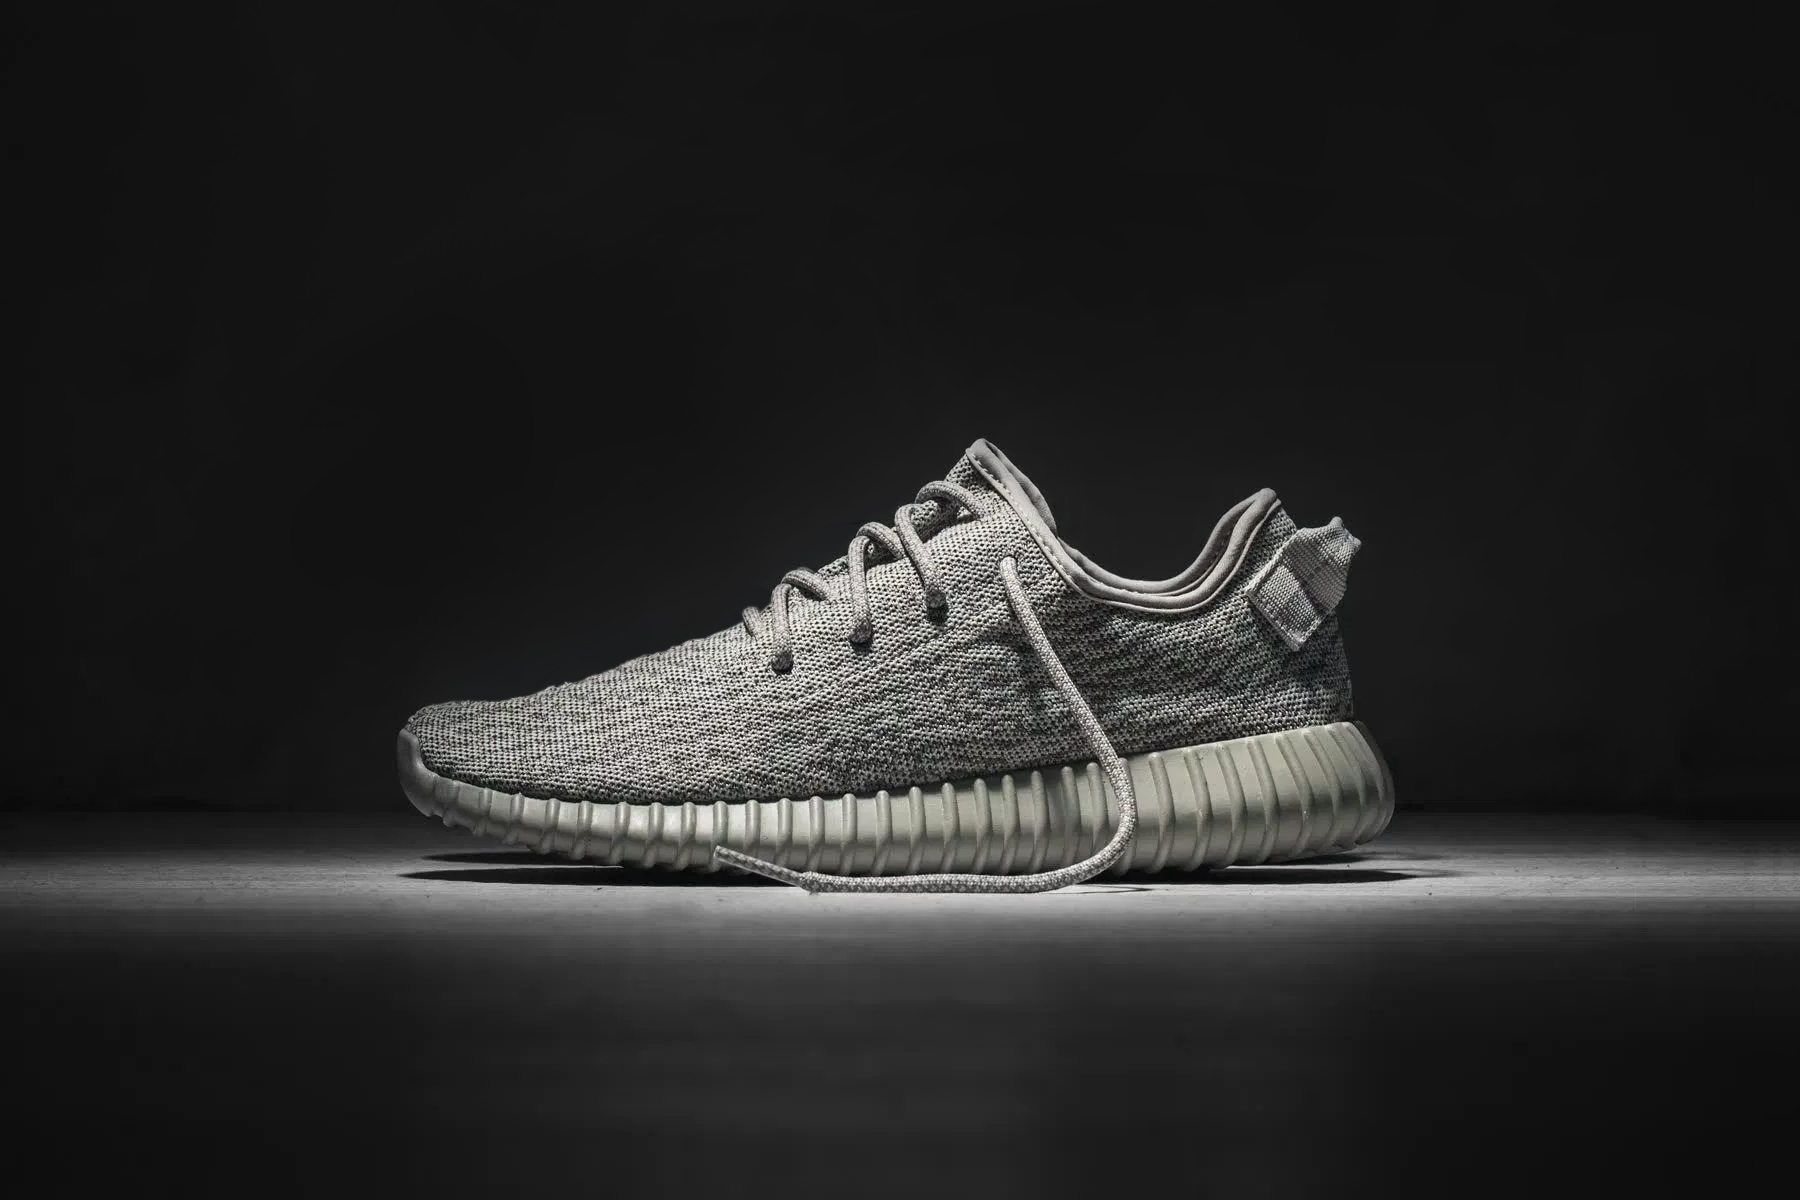 Adidas x Kanye West Yeezy 350 Boost HAVEN